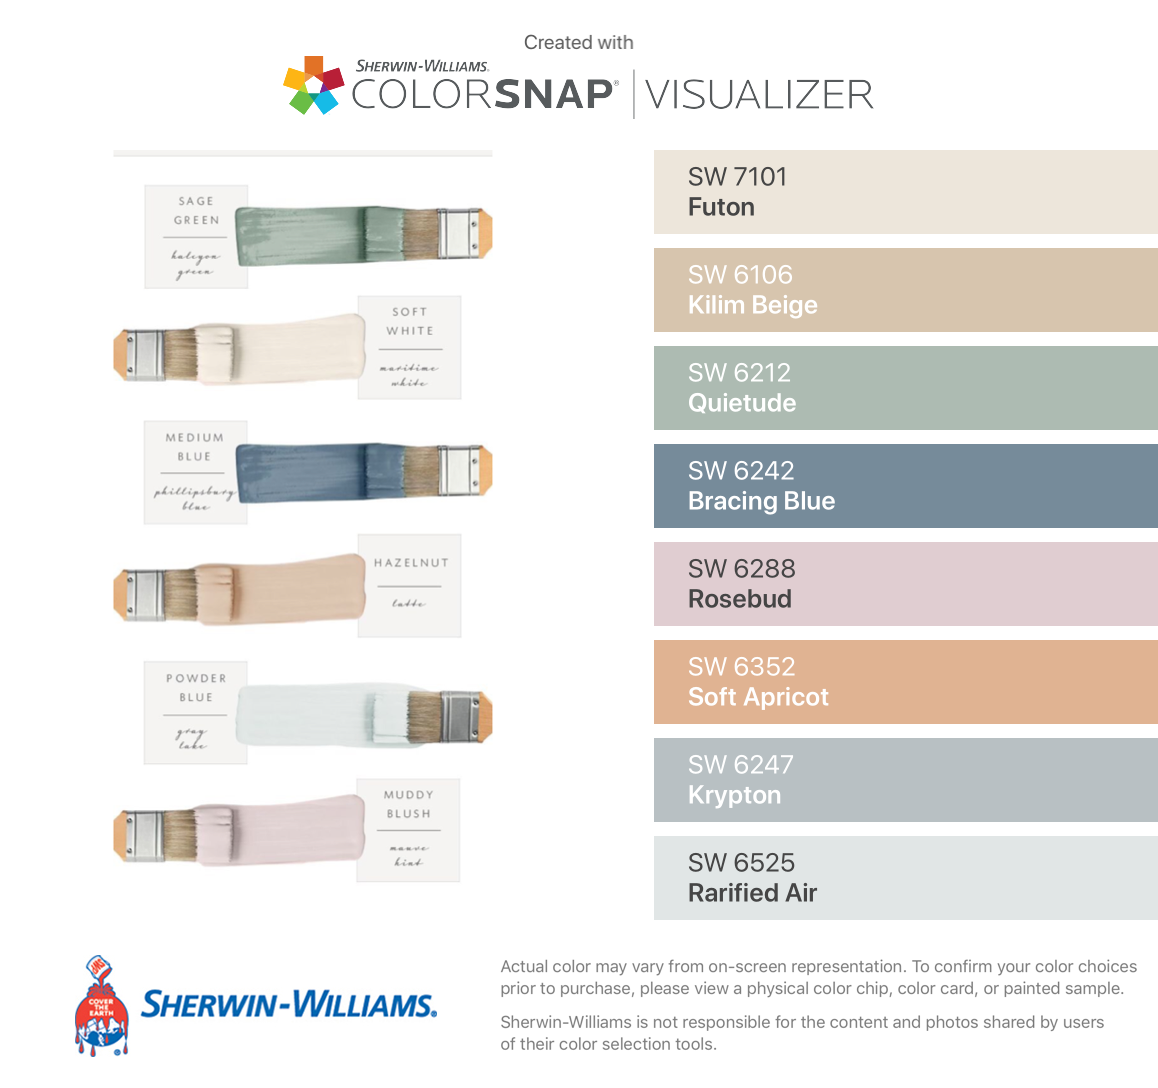 I Found These Colors With Colorsnap Visualizer For Iphone By Sherwin Williams Futon Sw 7101 Kilim Beige Kilim Beige Sherwin Williams Paint Colors For Home